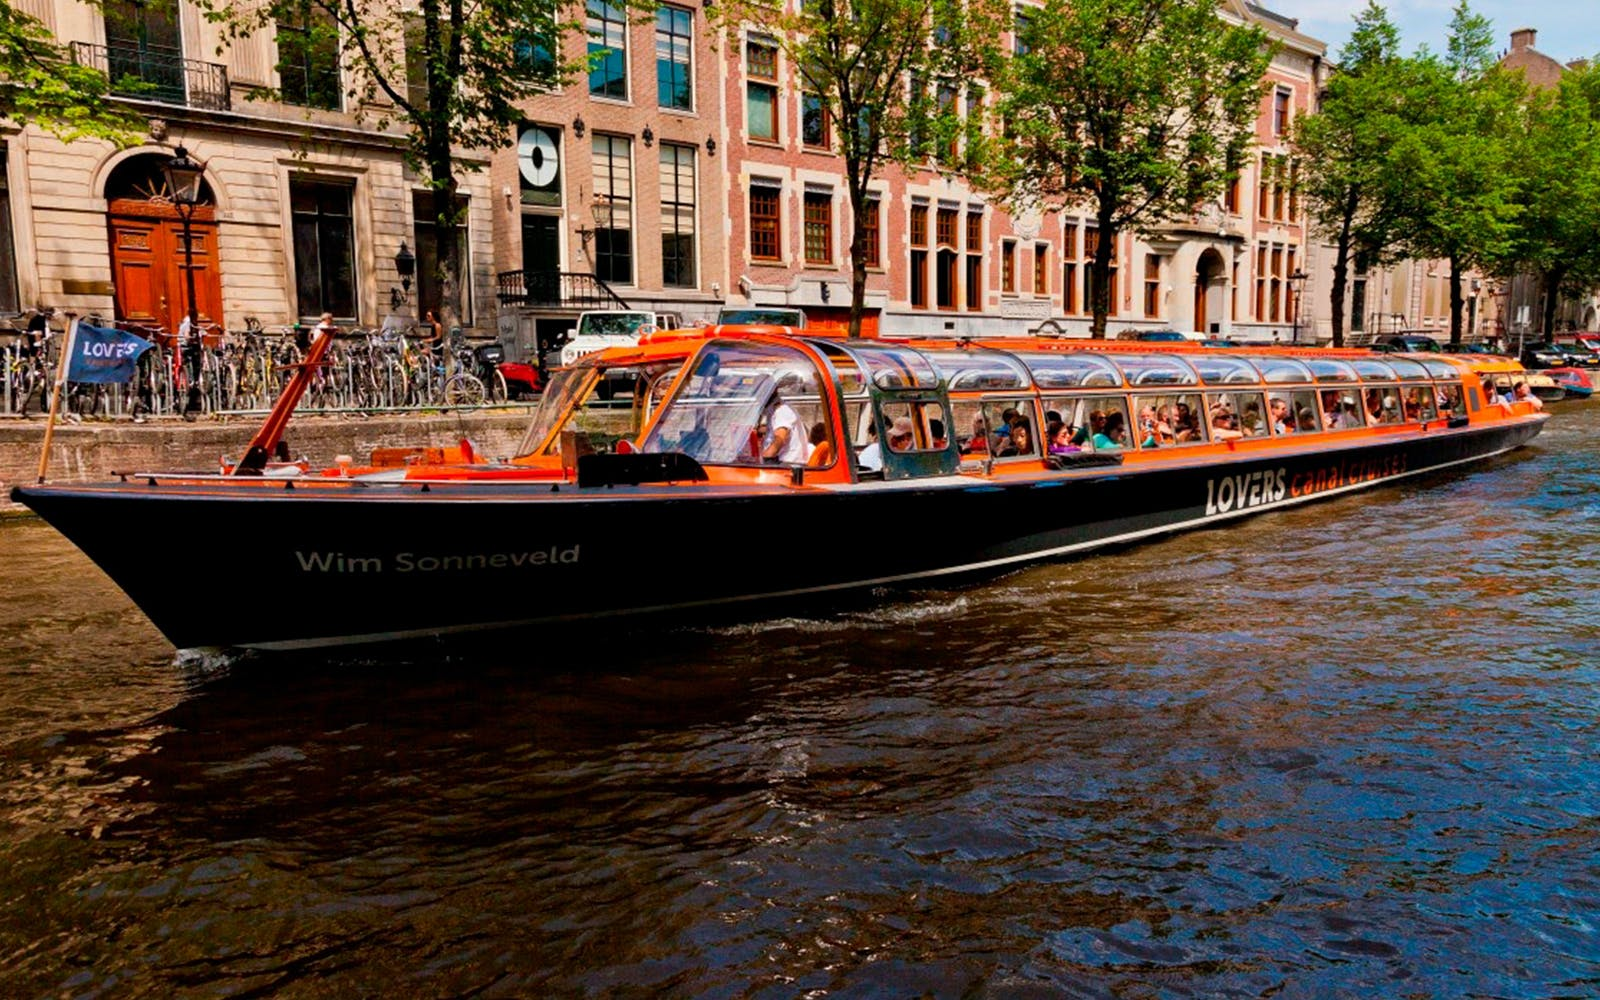 Lovers: 1 Hour Amsterdam Canal Cruise